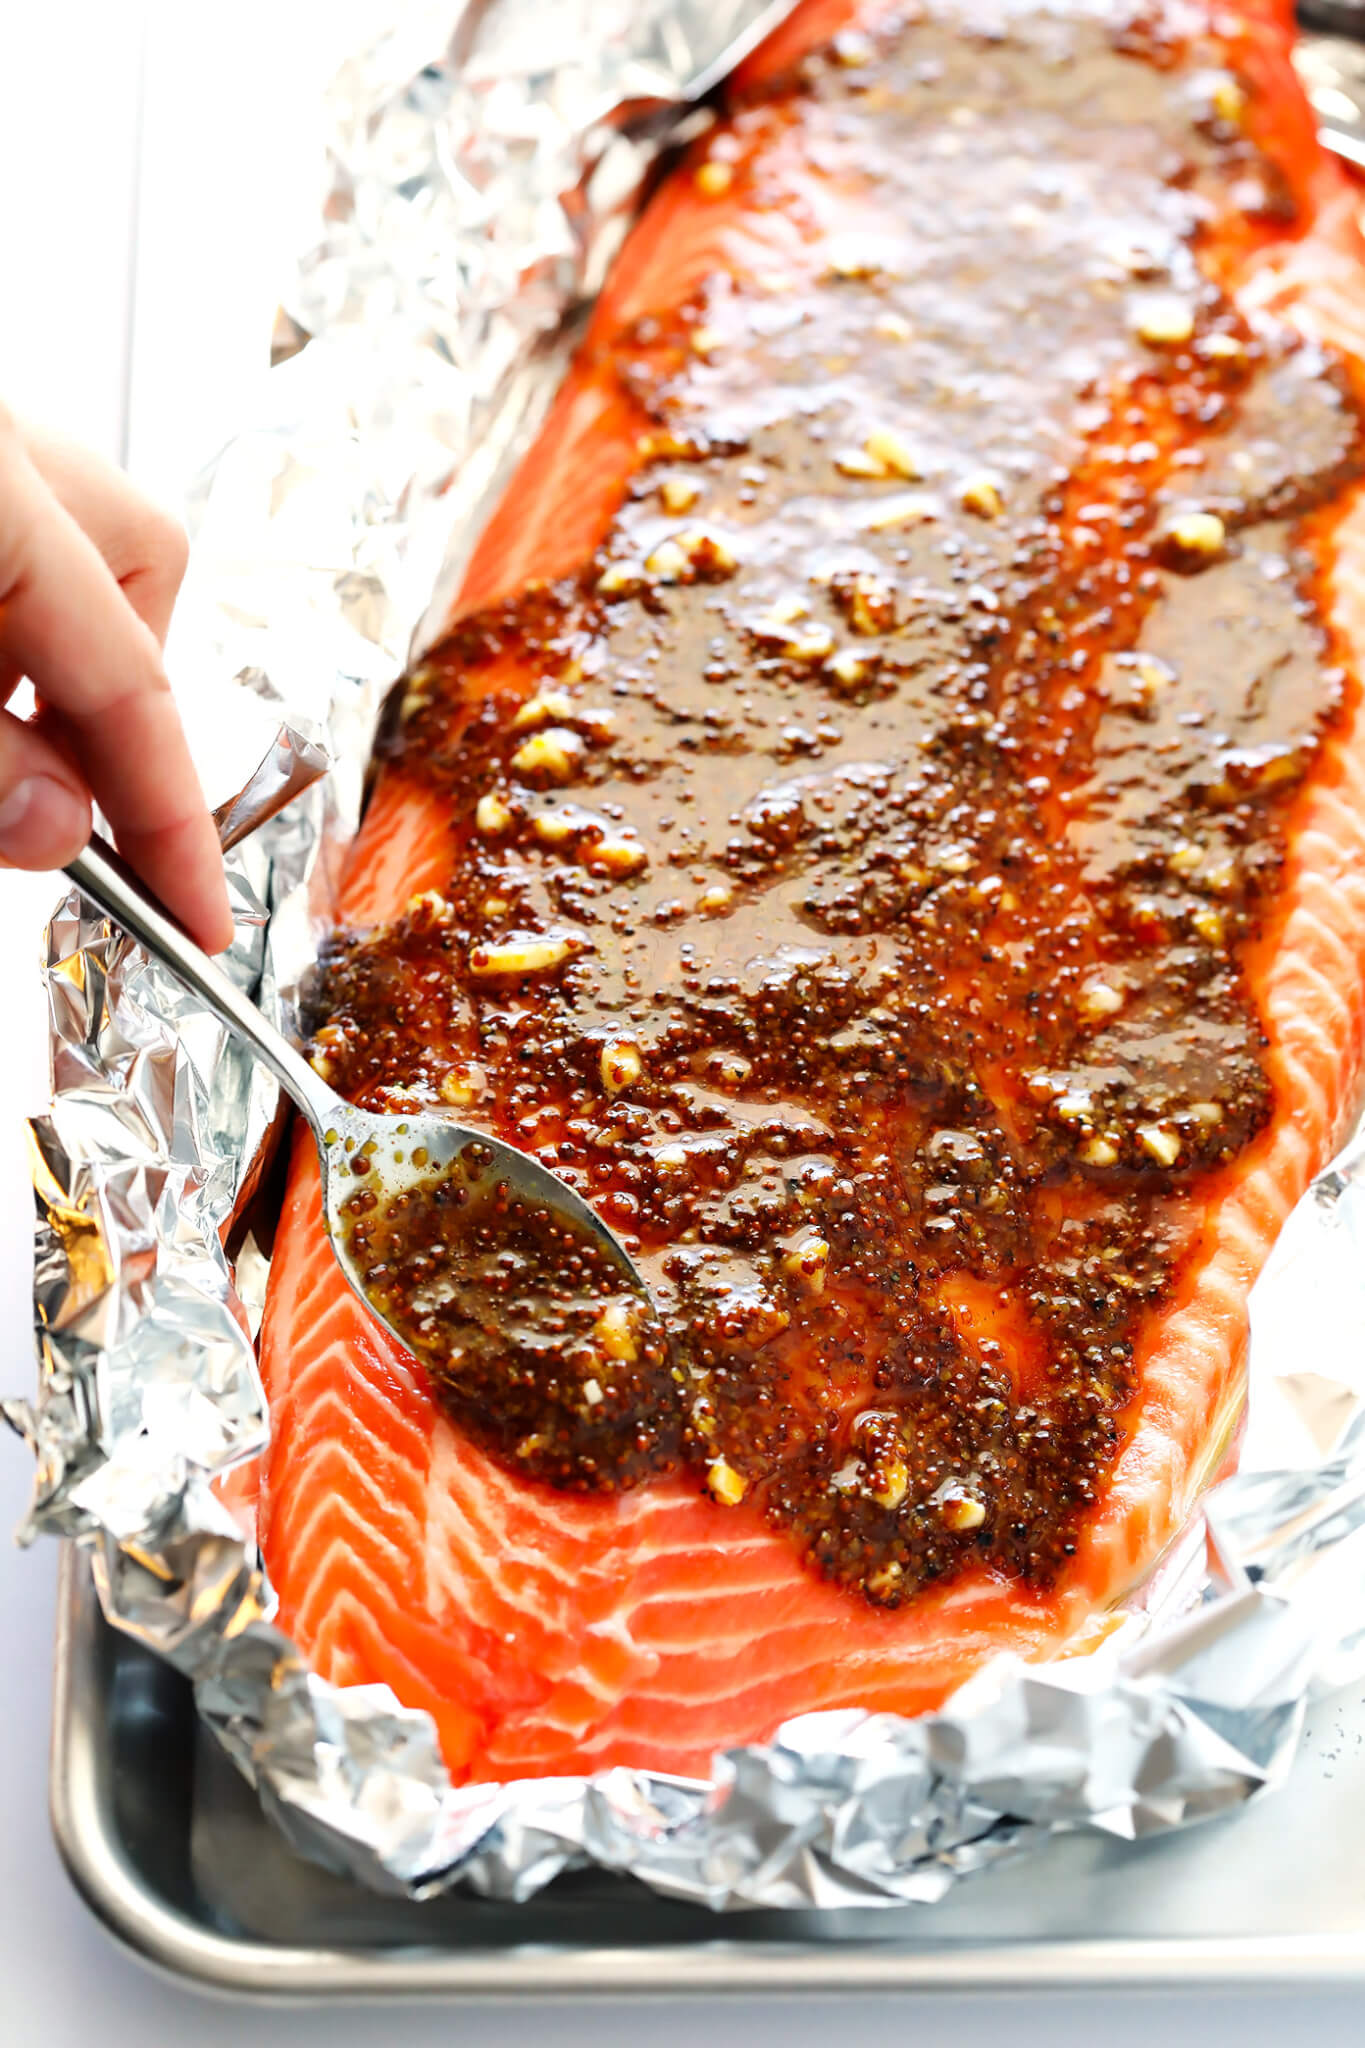 How To Cook Salmon with Honey Mustard Sauce